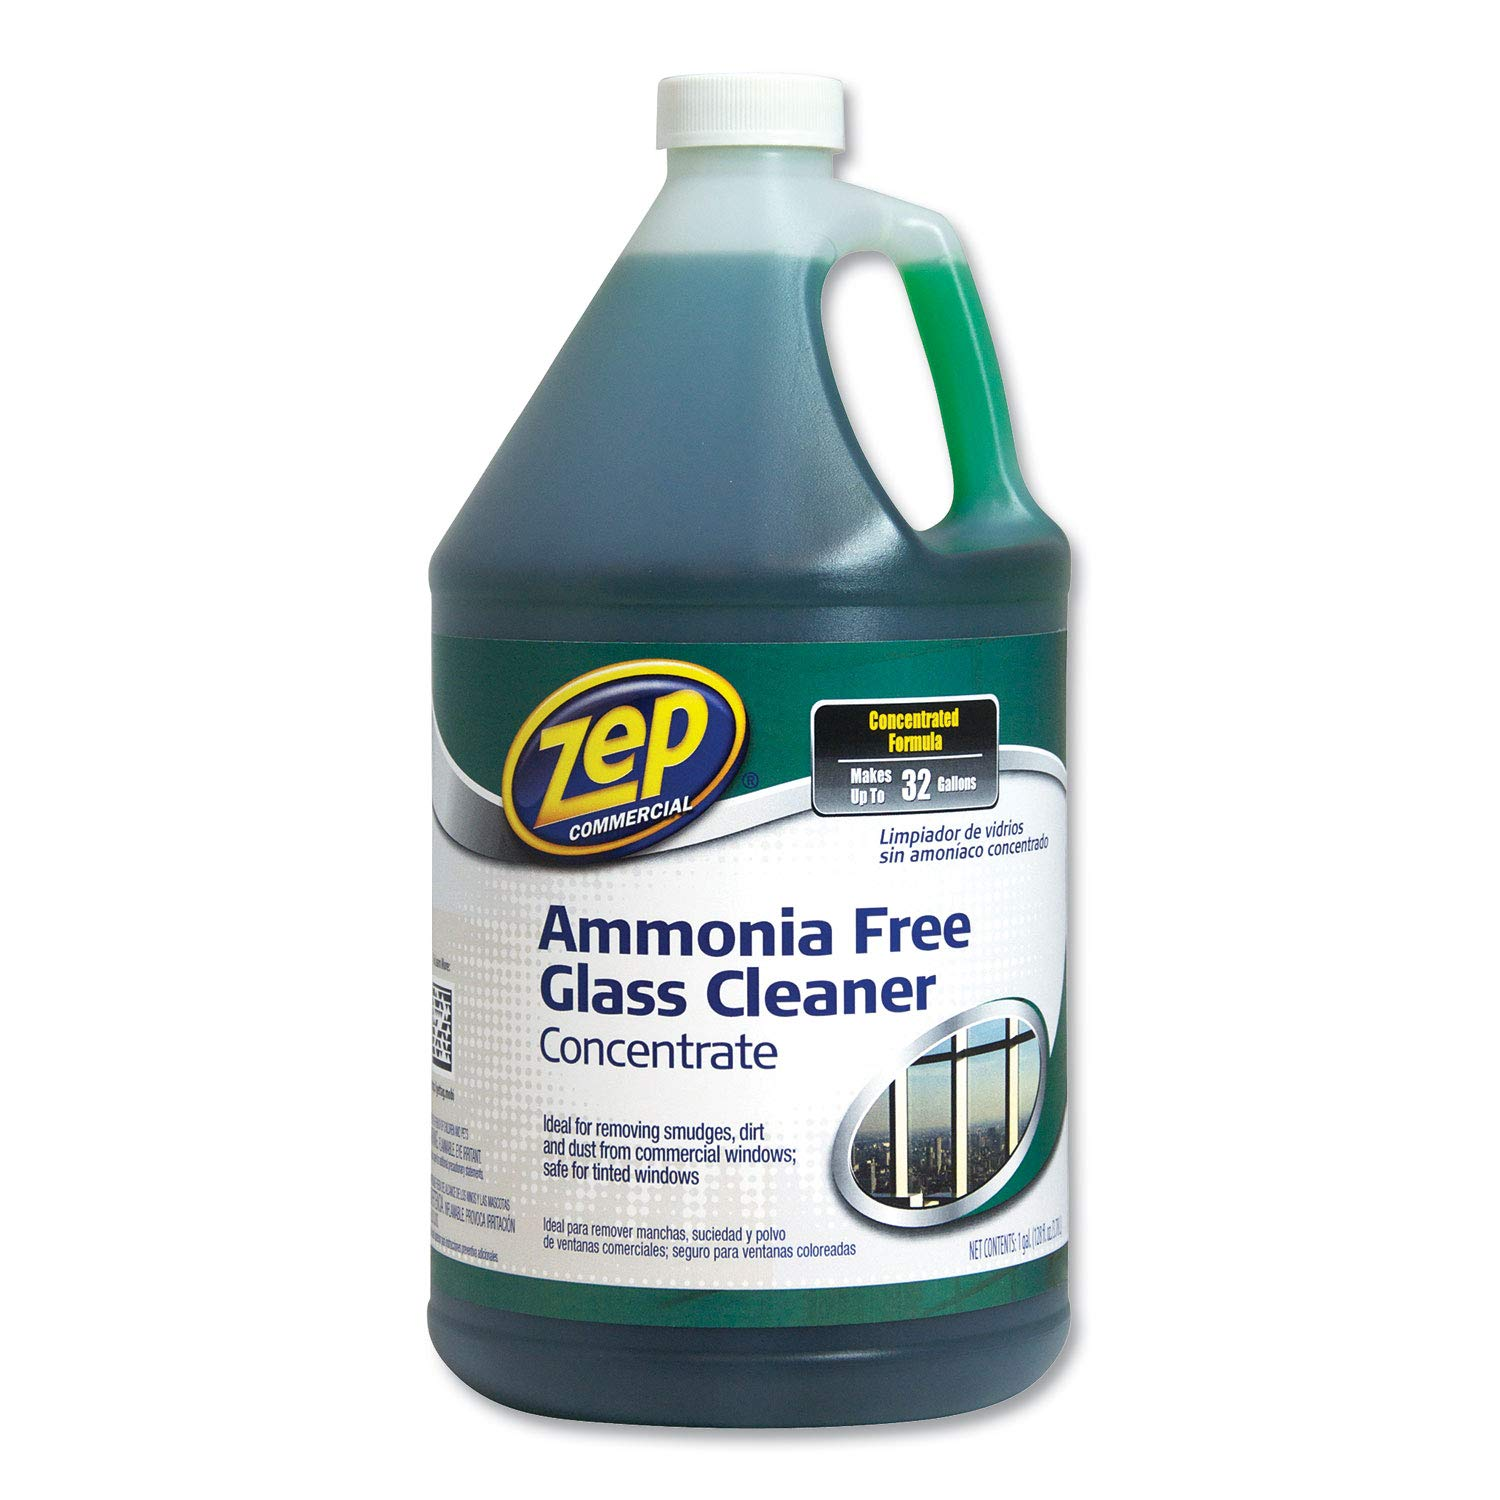 PACK OF 4 -Zep Commercial Ammonia-Free Glass Cleaner Concentrate, 1 gal